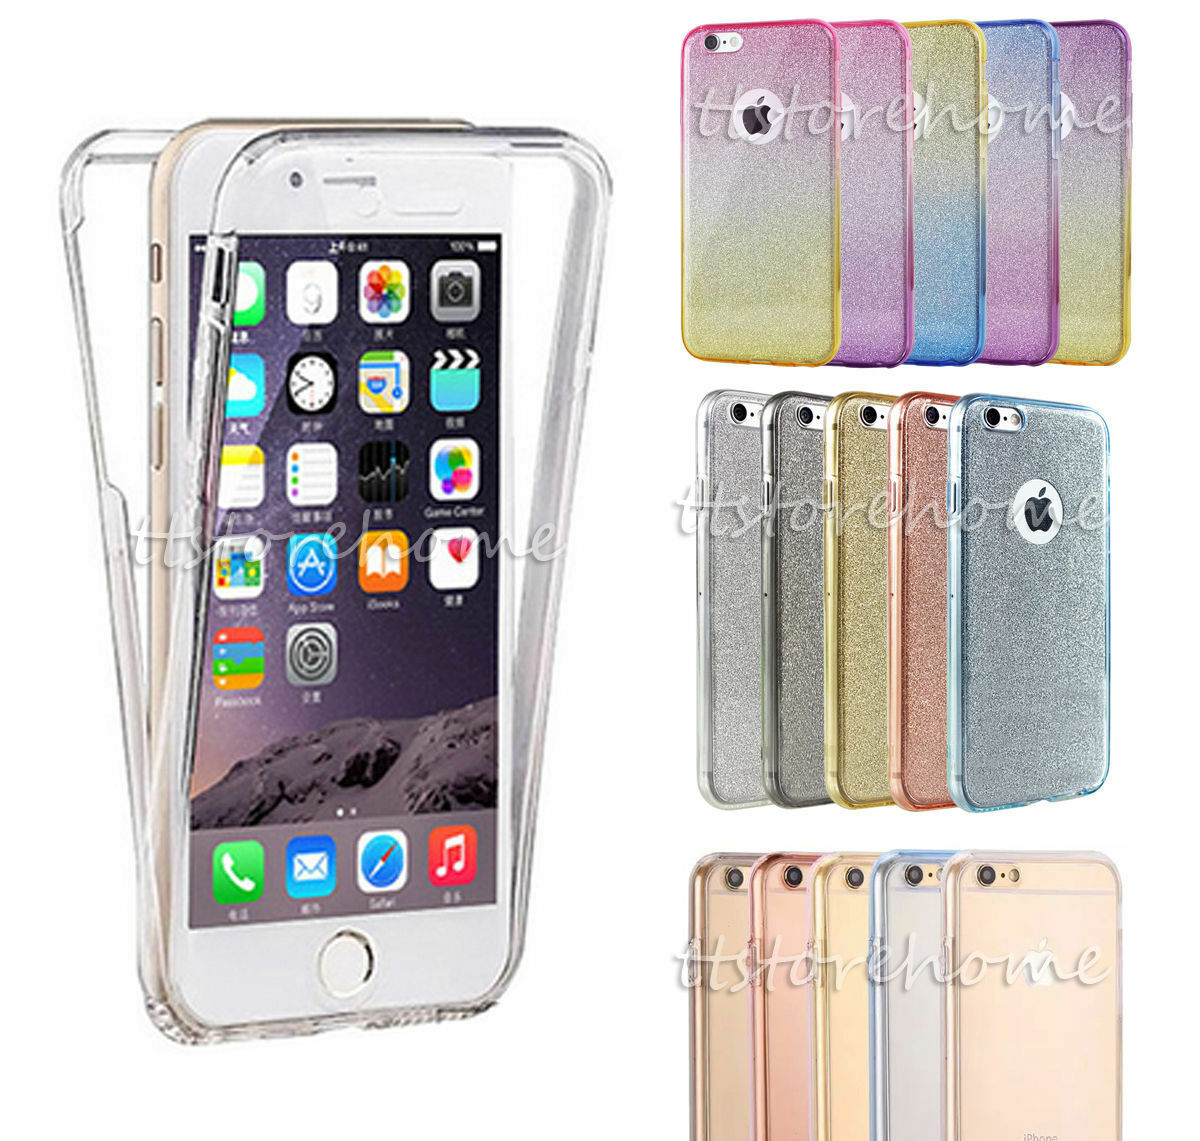 Shockproof TPU 360° Protective Clear Case Cover For Apple iPhone 5 6 6S Plus